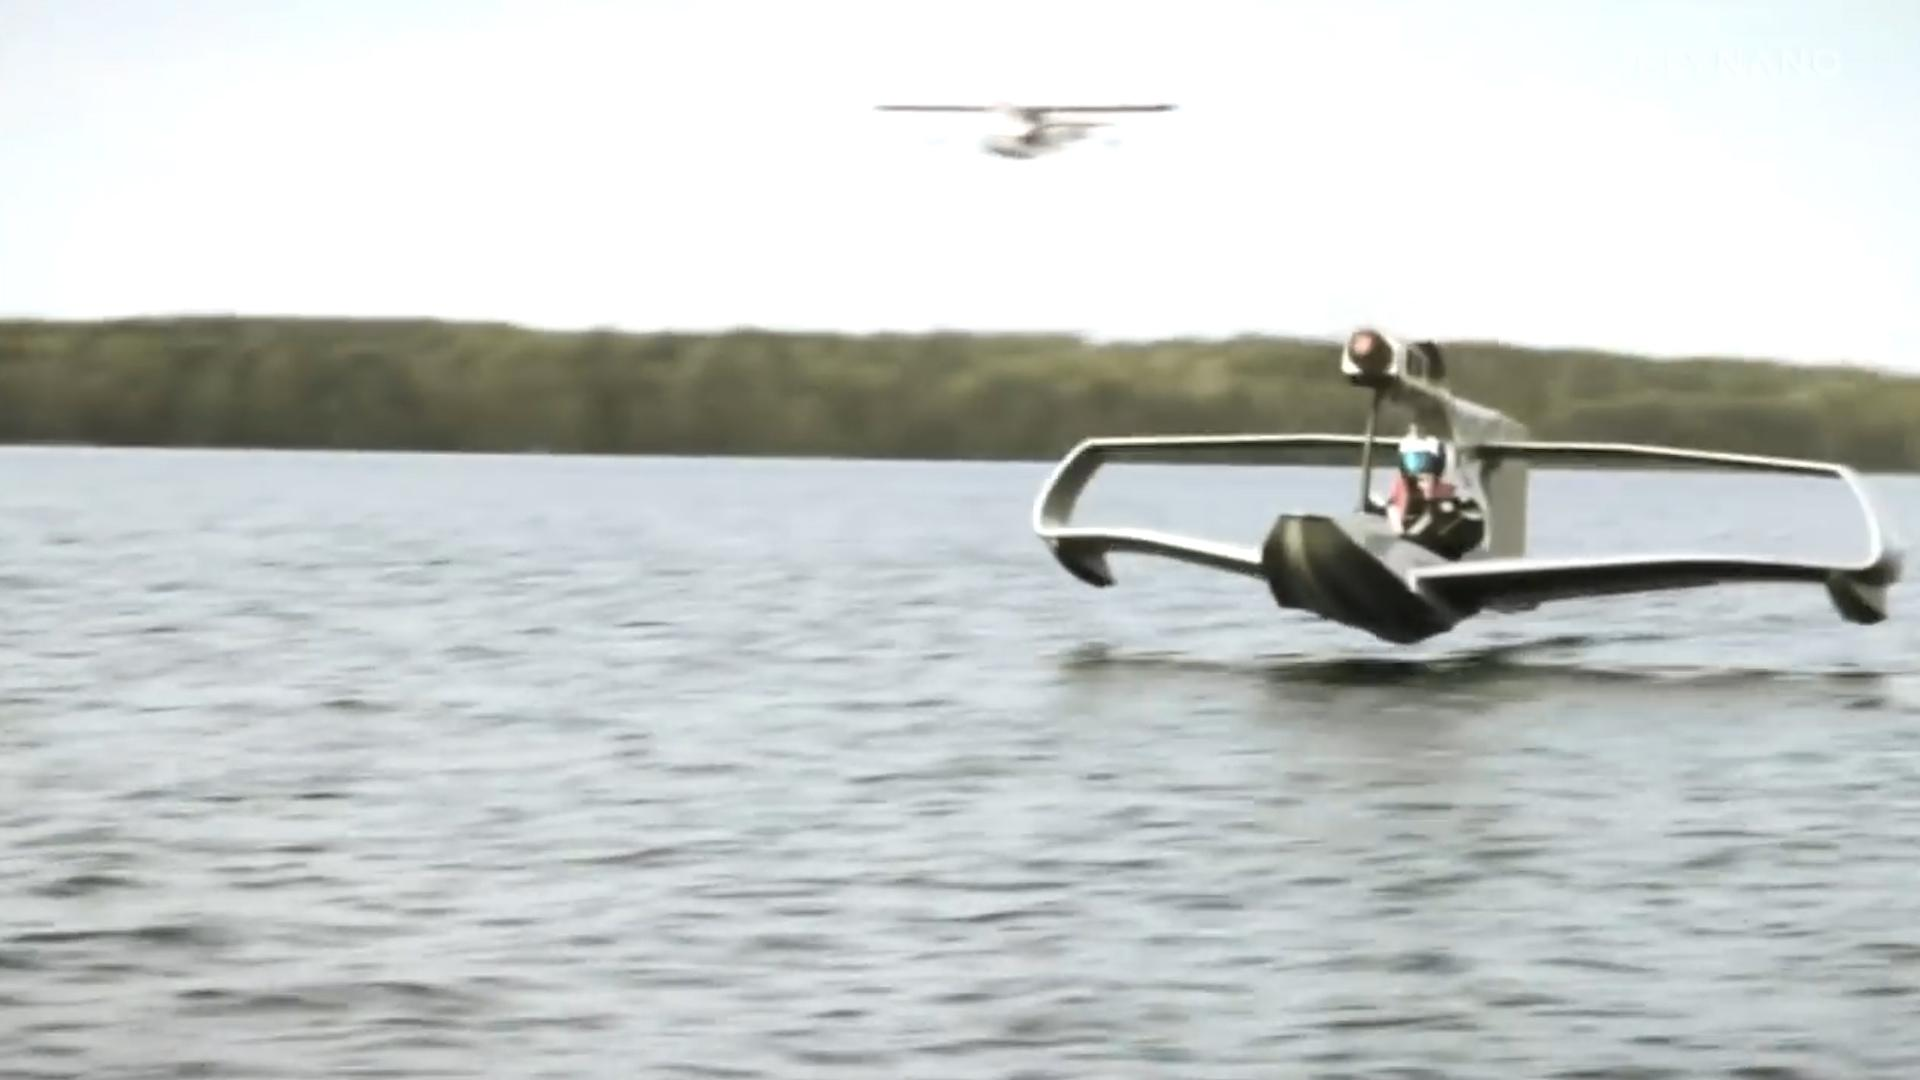 Flynano is part electric aircraft, part jet ski